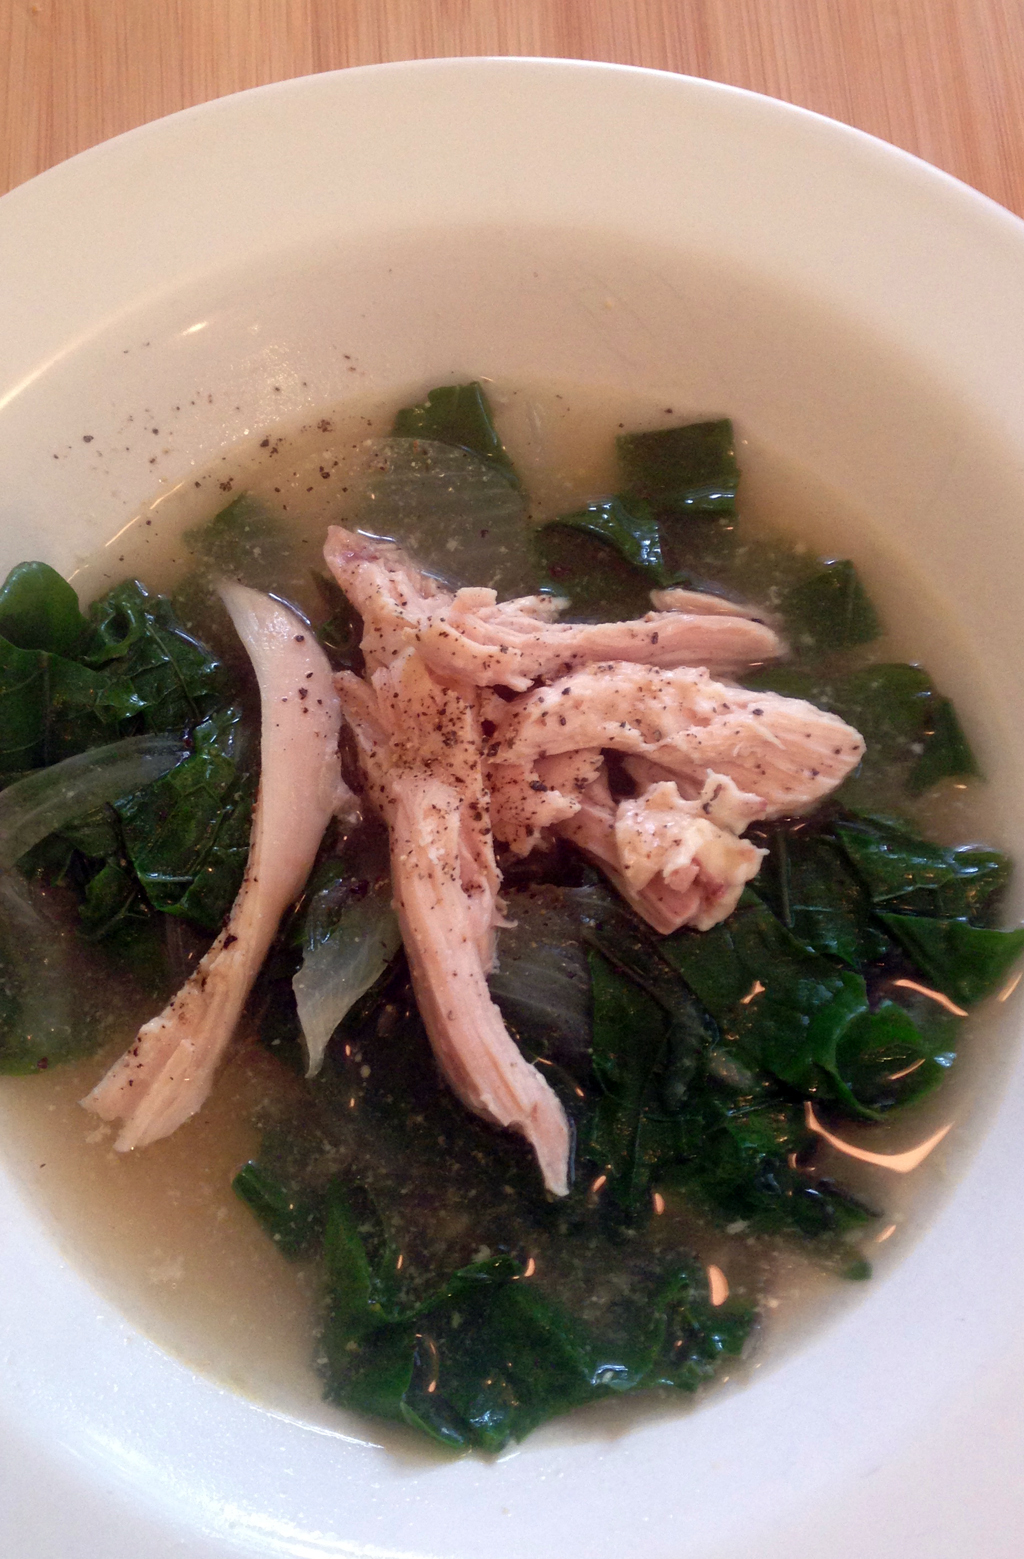 Chicken soup with kale.